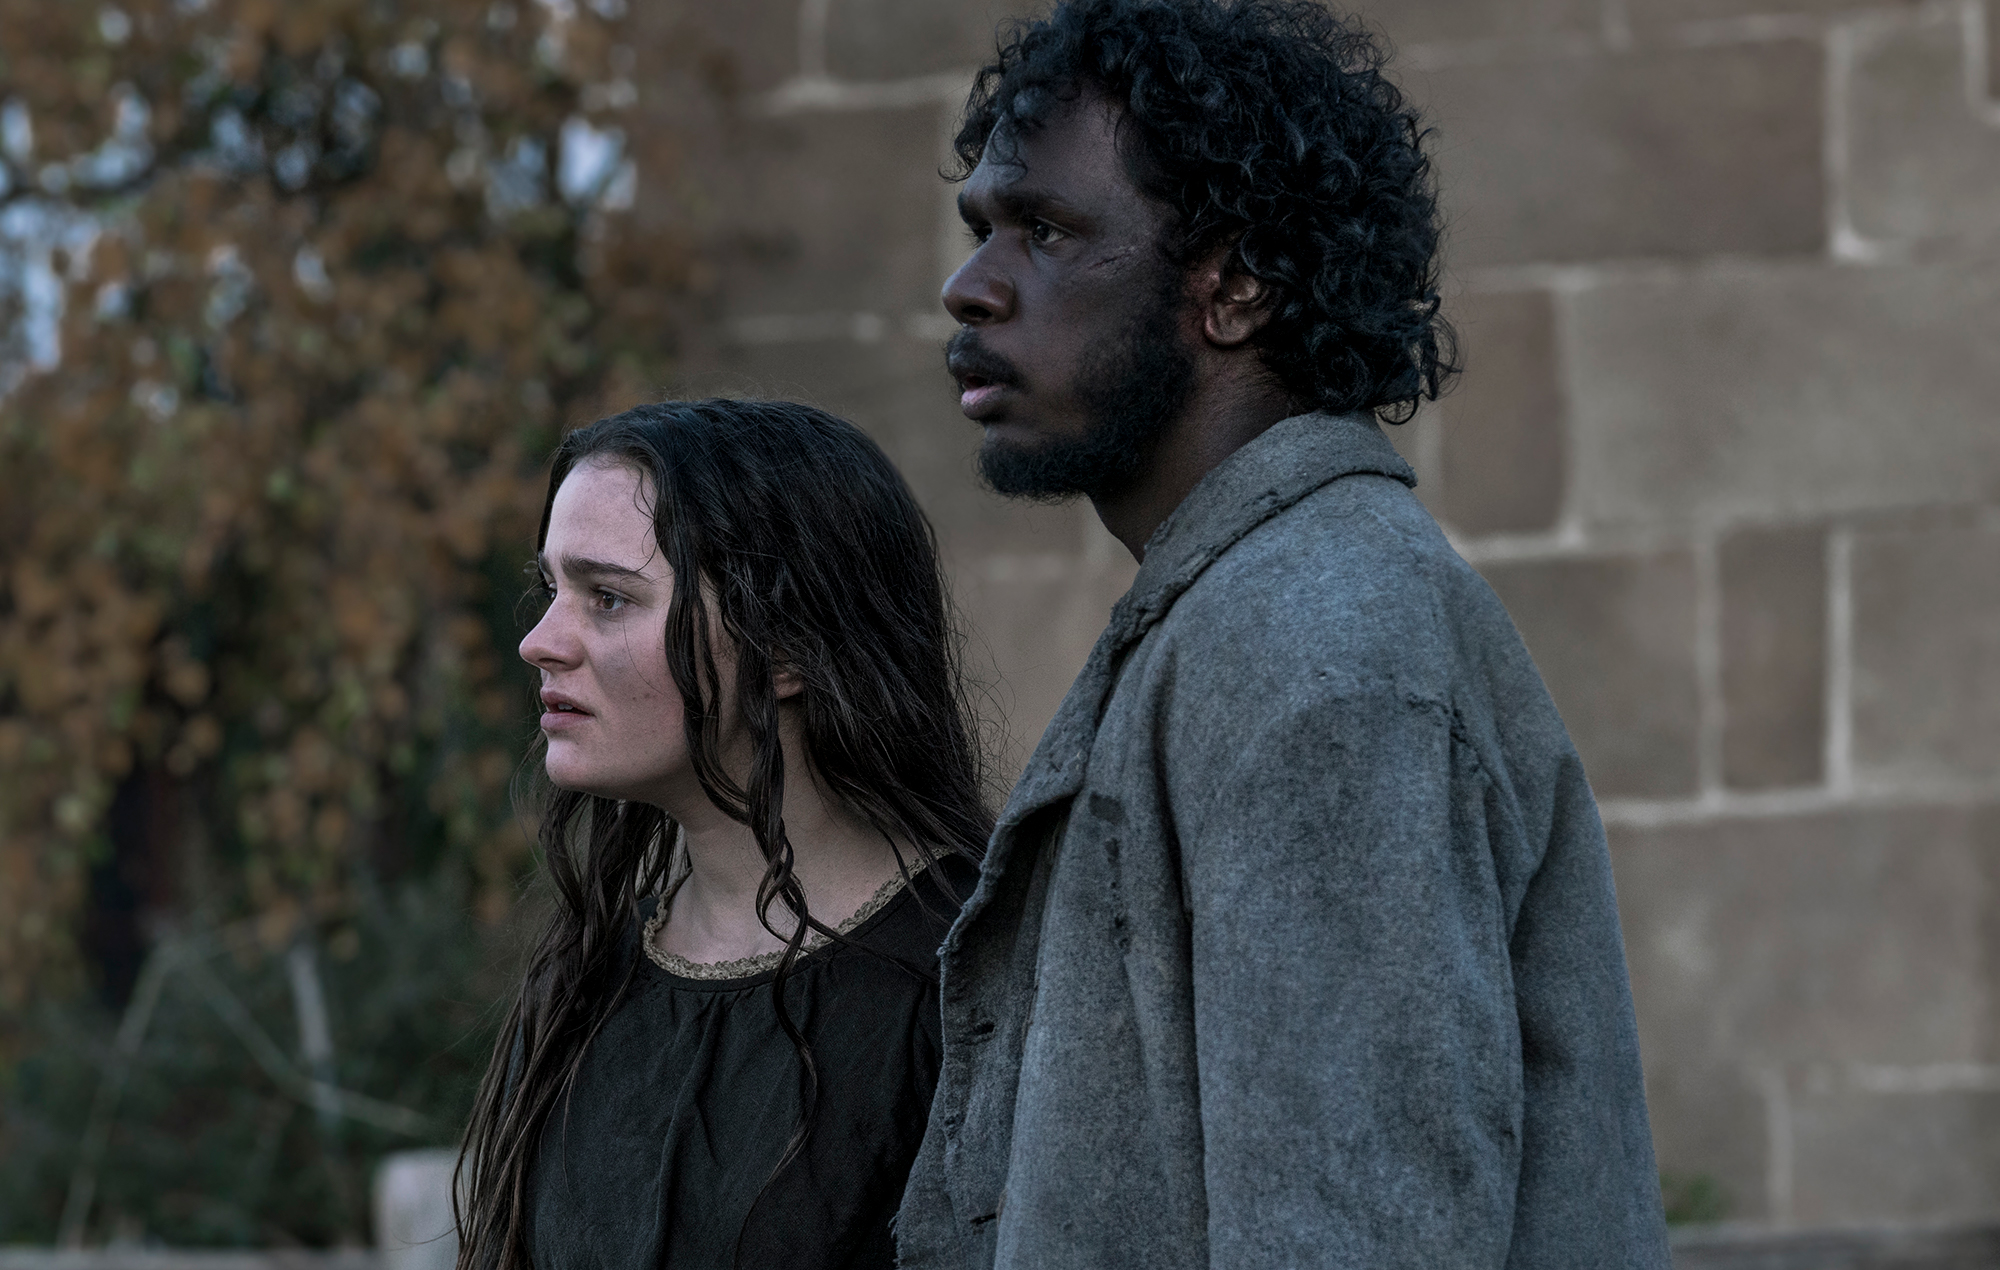 'The Nightingale' review: the most shocking film of the year